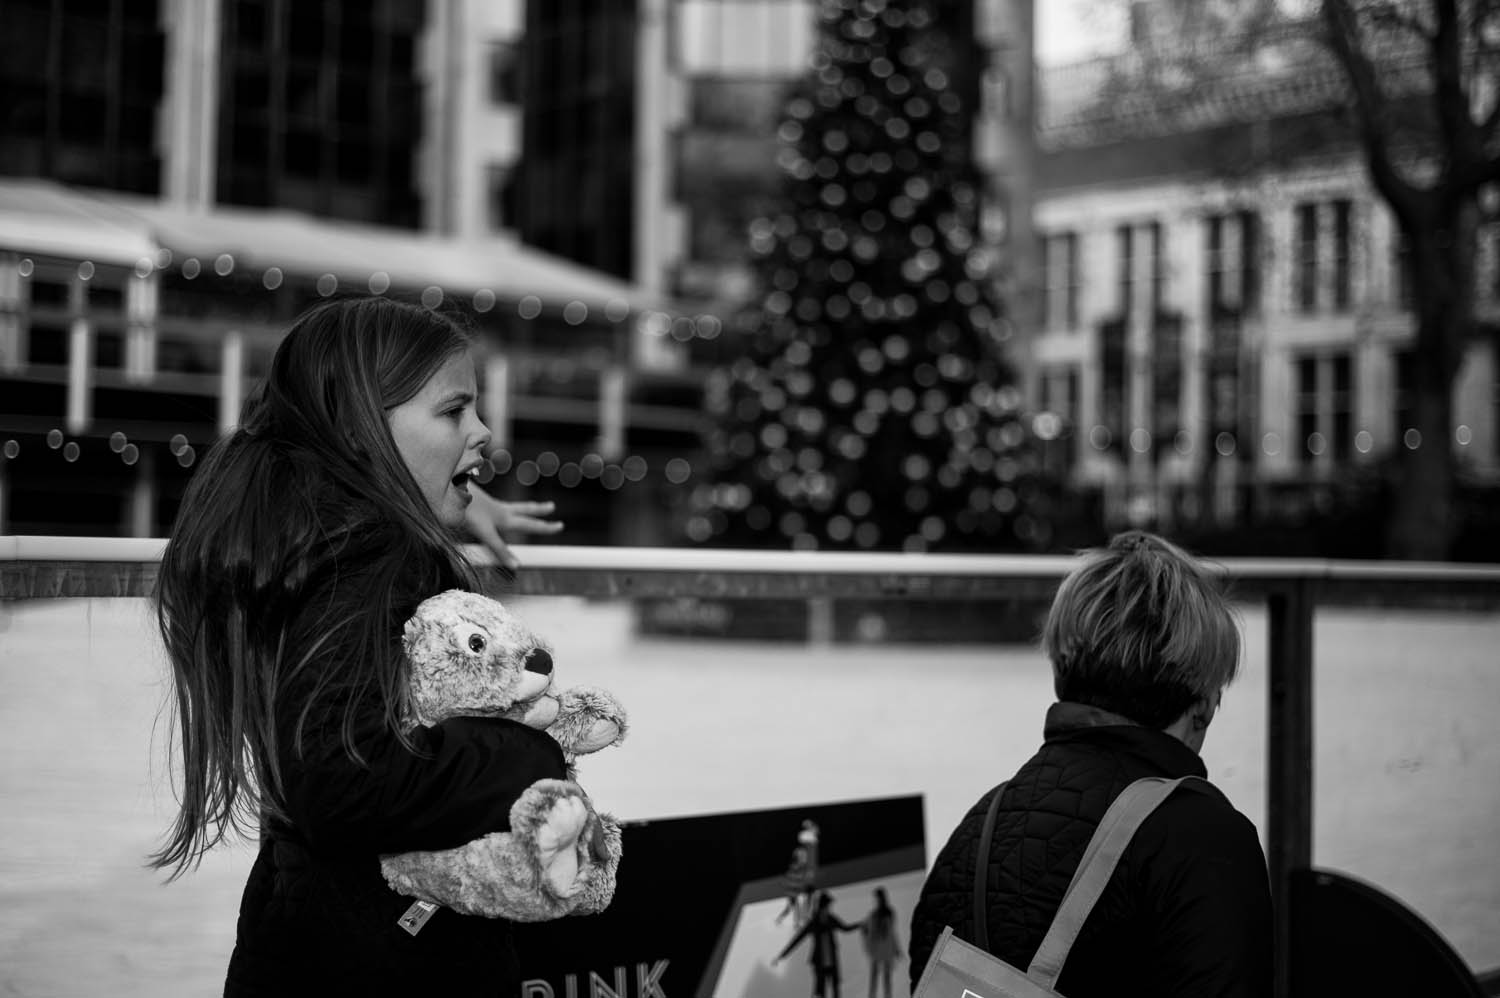 A small girl holding a stuffed animal in front of an outside ice rink and Christmas tree in London